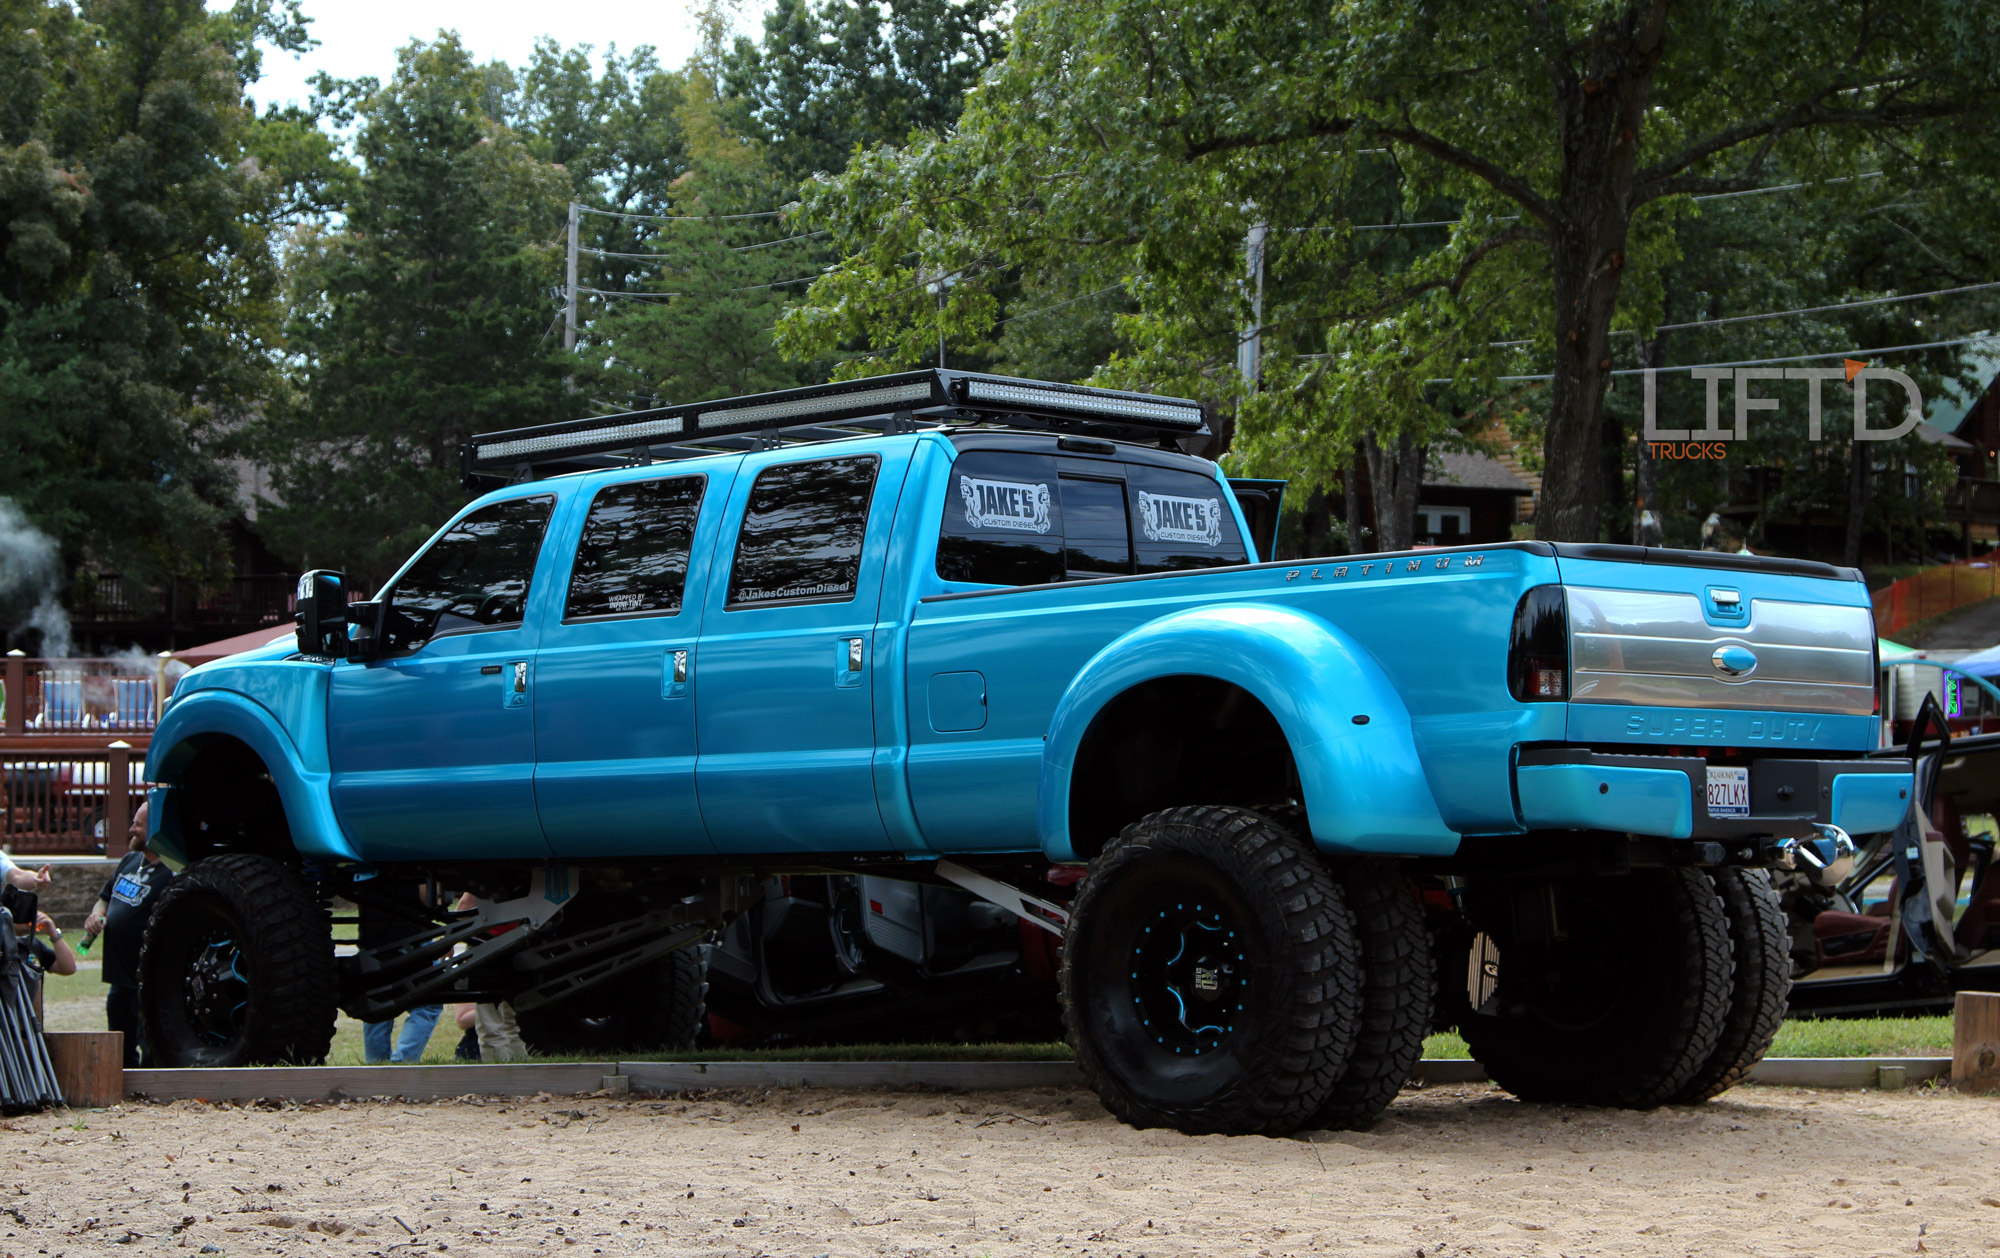 Full Force Diesel >> The American Force Table Rock Lifted Truck Nationals – Lift'd Trucks